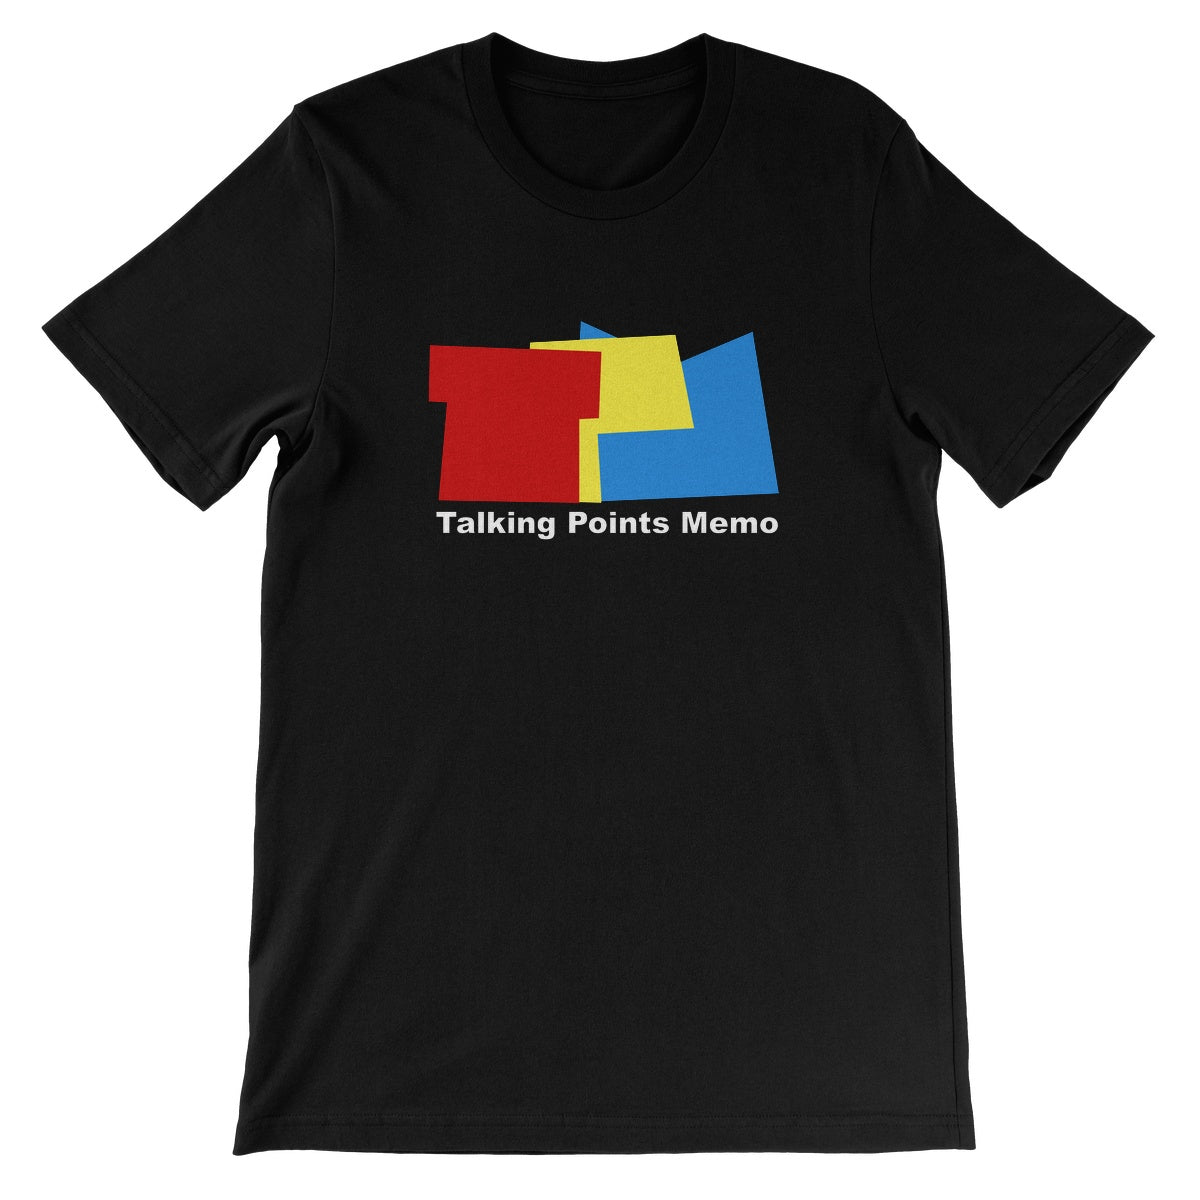 Abstract TPM Short Sleeve T-Shirt